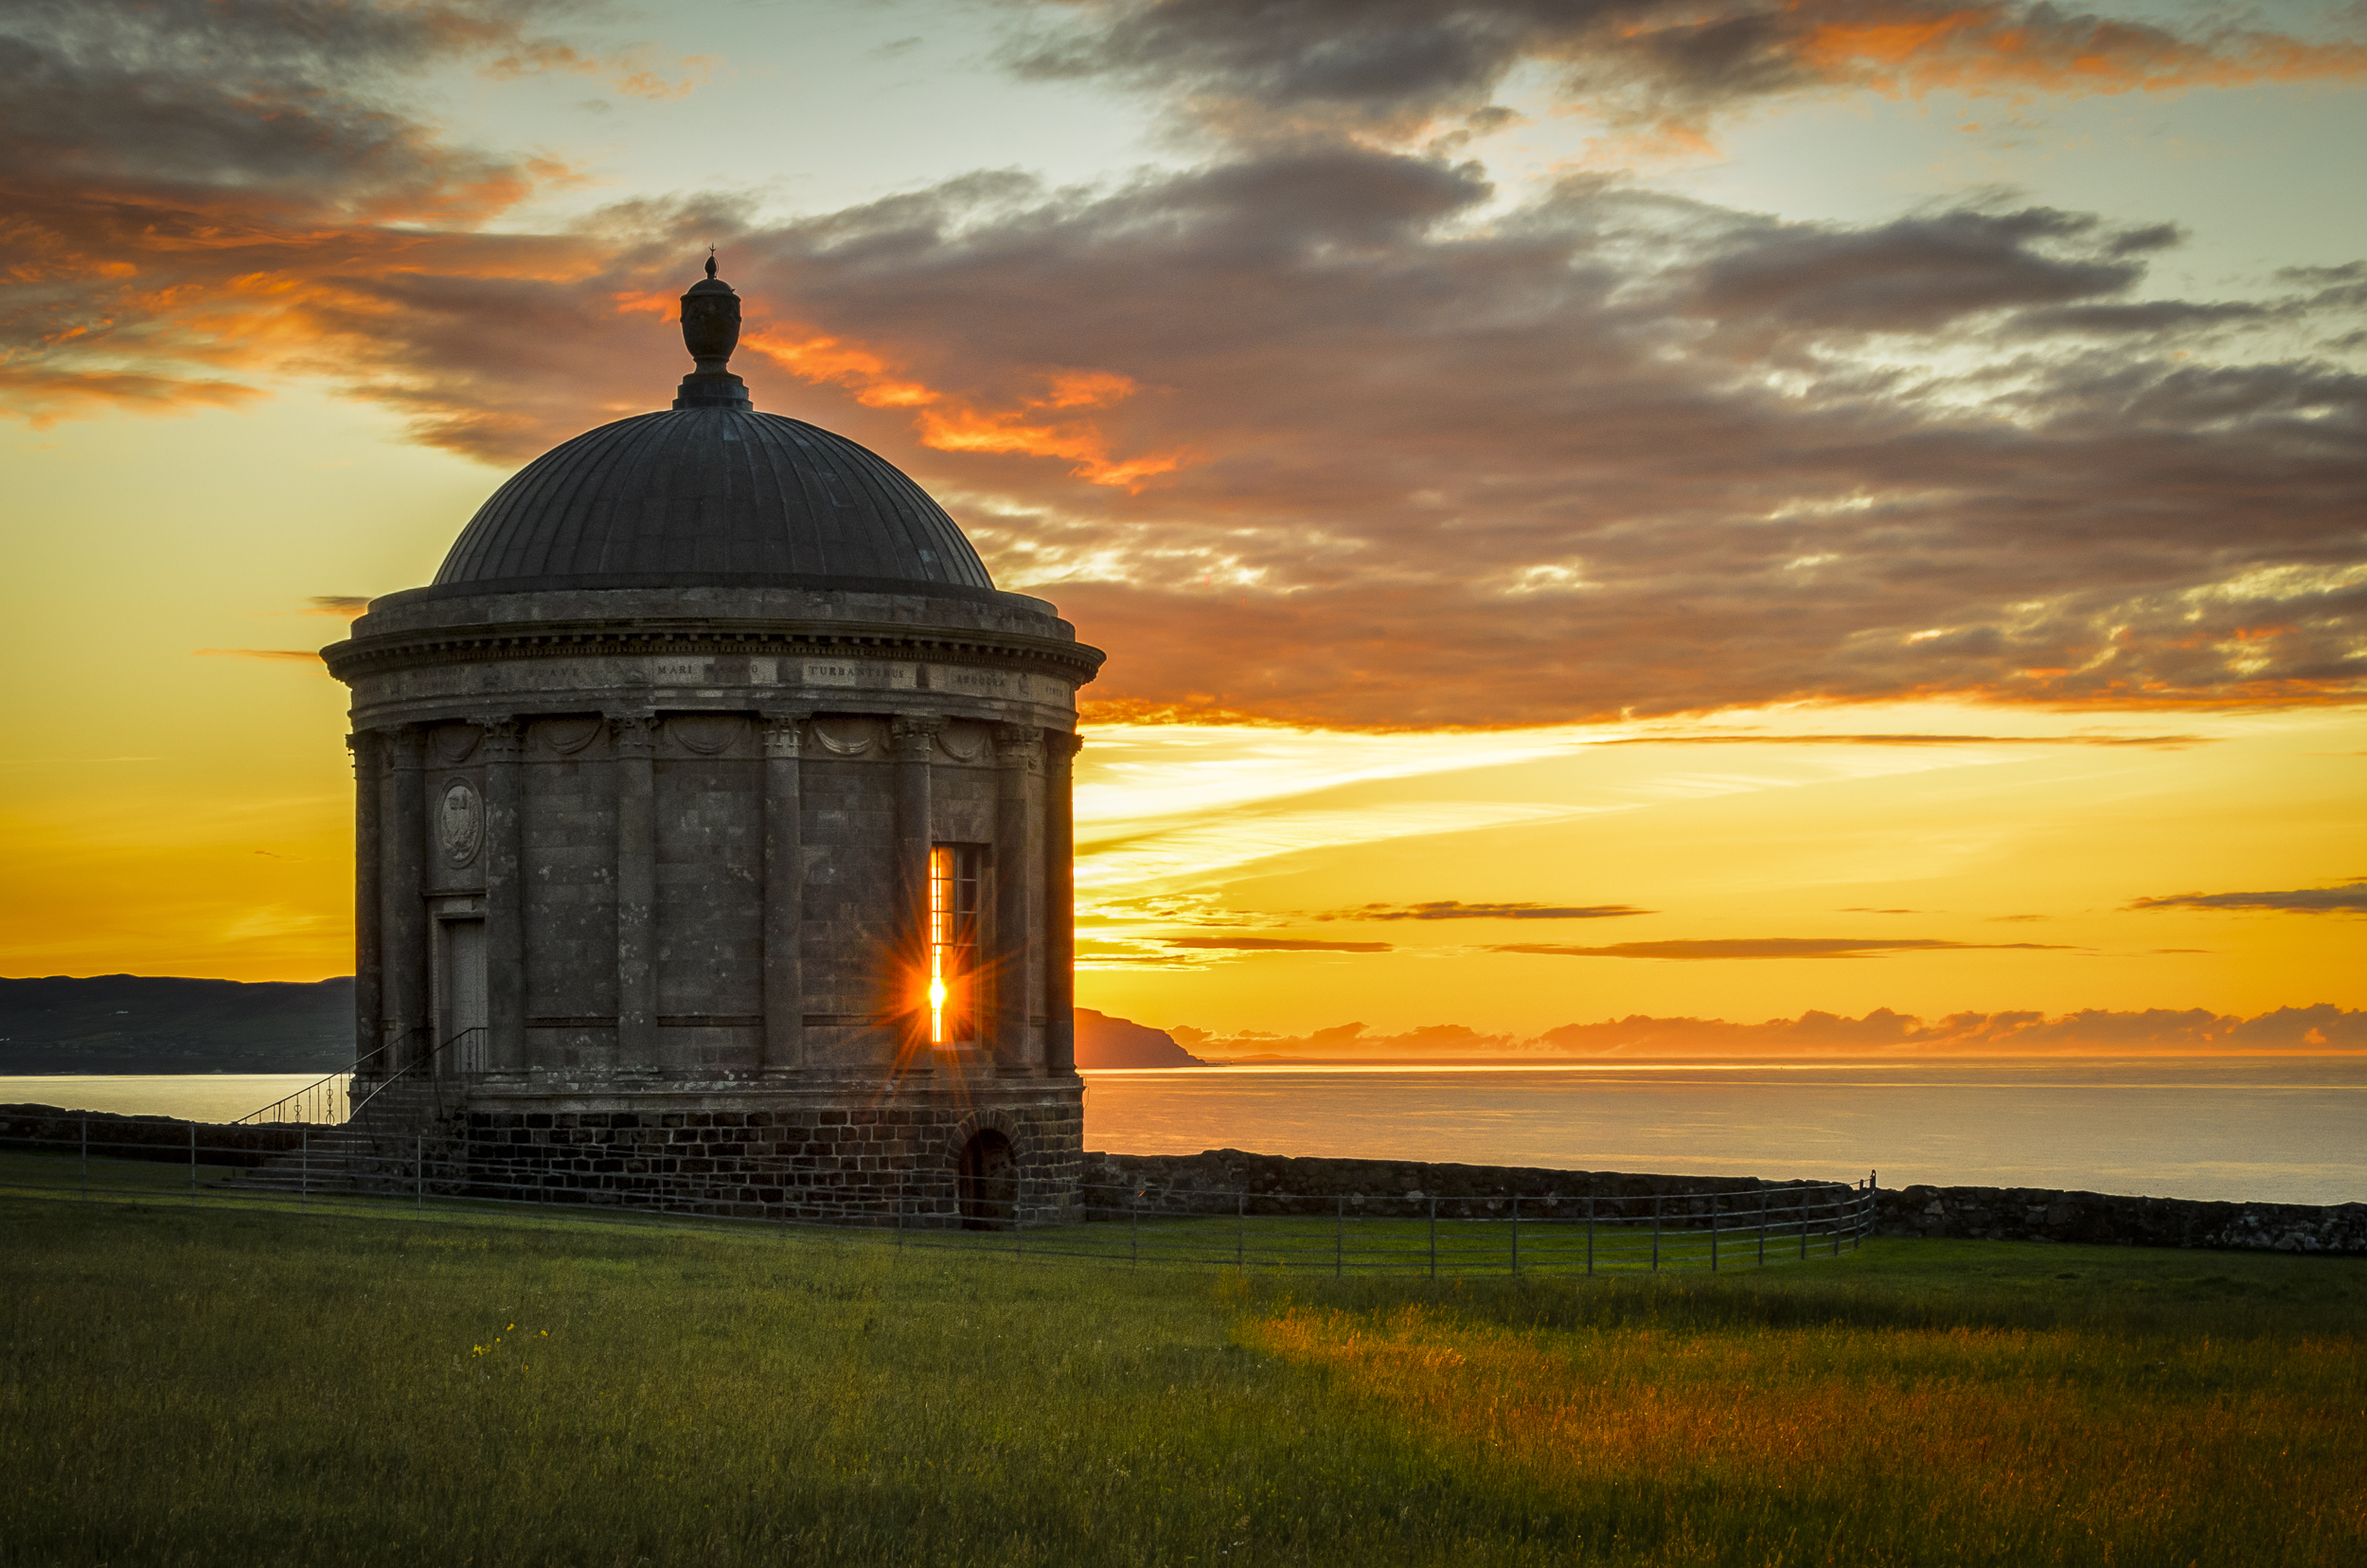 A light in the window, Mussenden